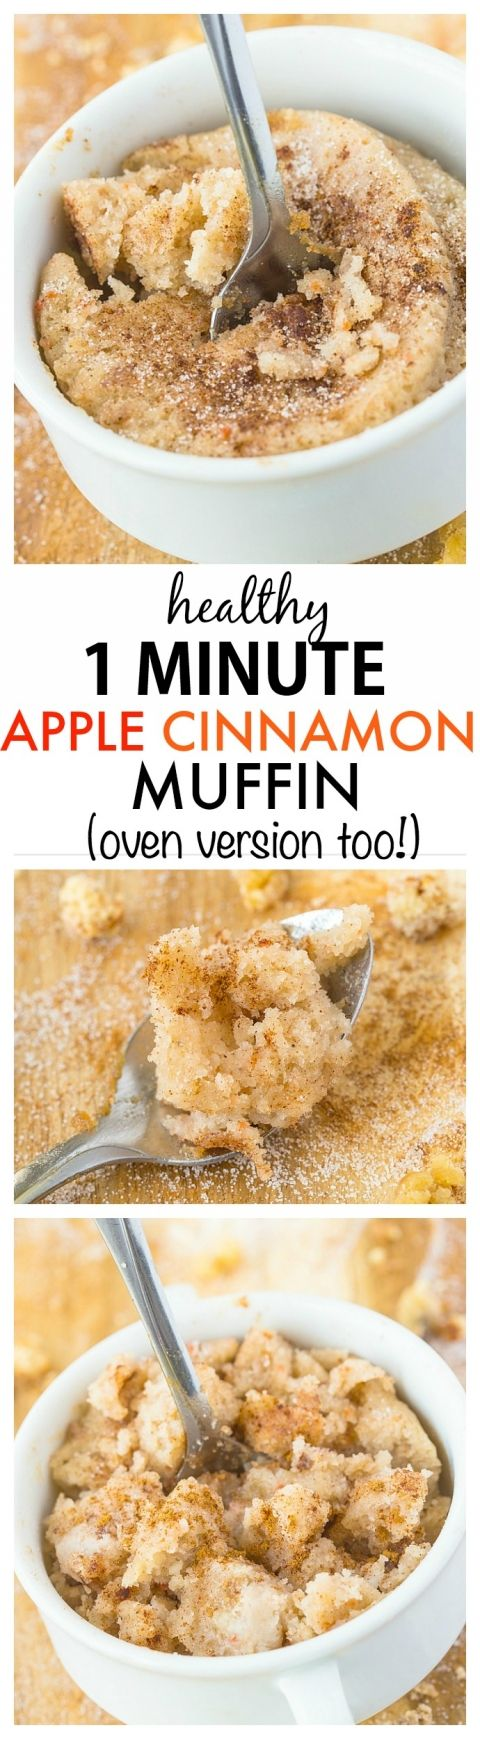 Healthy 1 Minute Apple Cinnamon Muffin recipe- A quick and easy one minute muffin which is moist, fluffy and less than 100 calories- Naturally sweetened and SO delicious- An oven option too! {vegan, gluten free, paleo option}